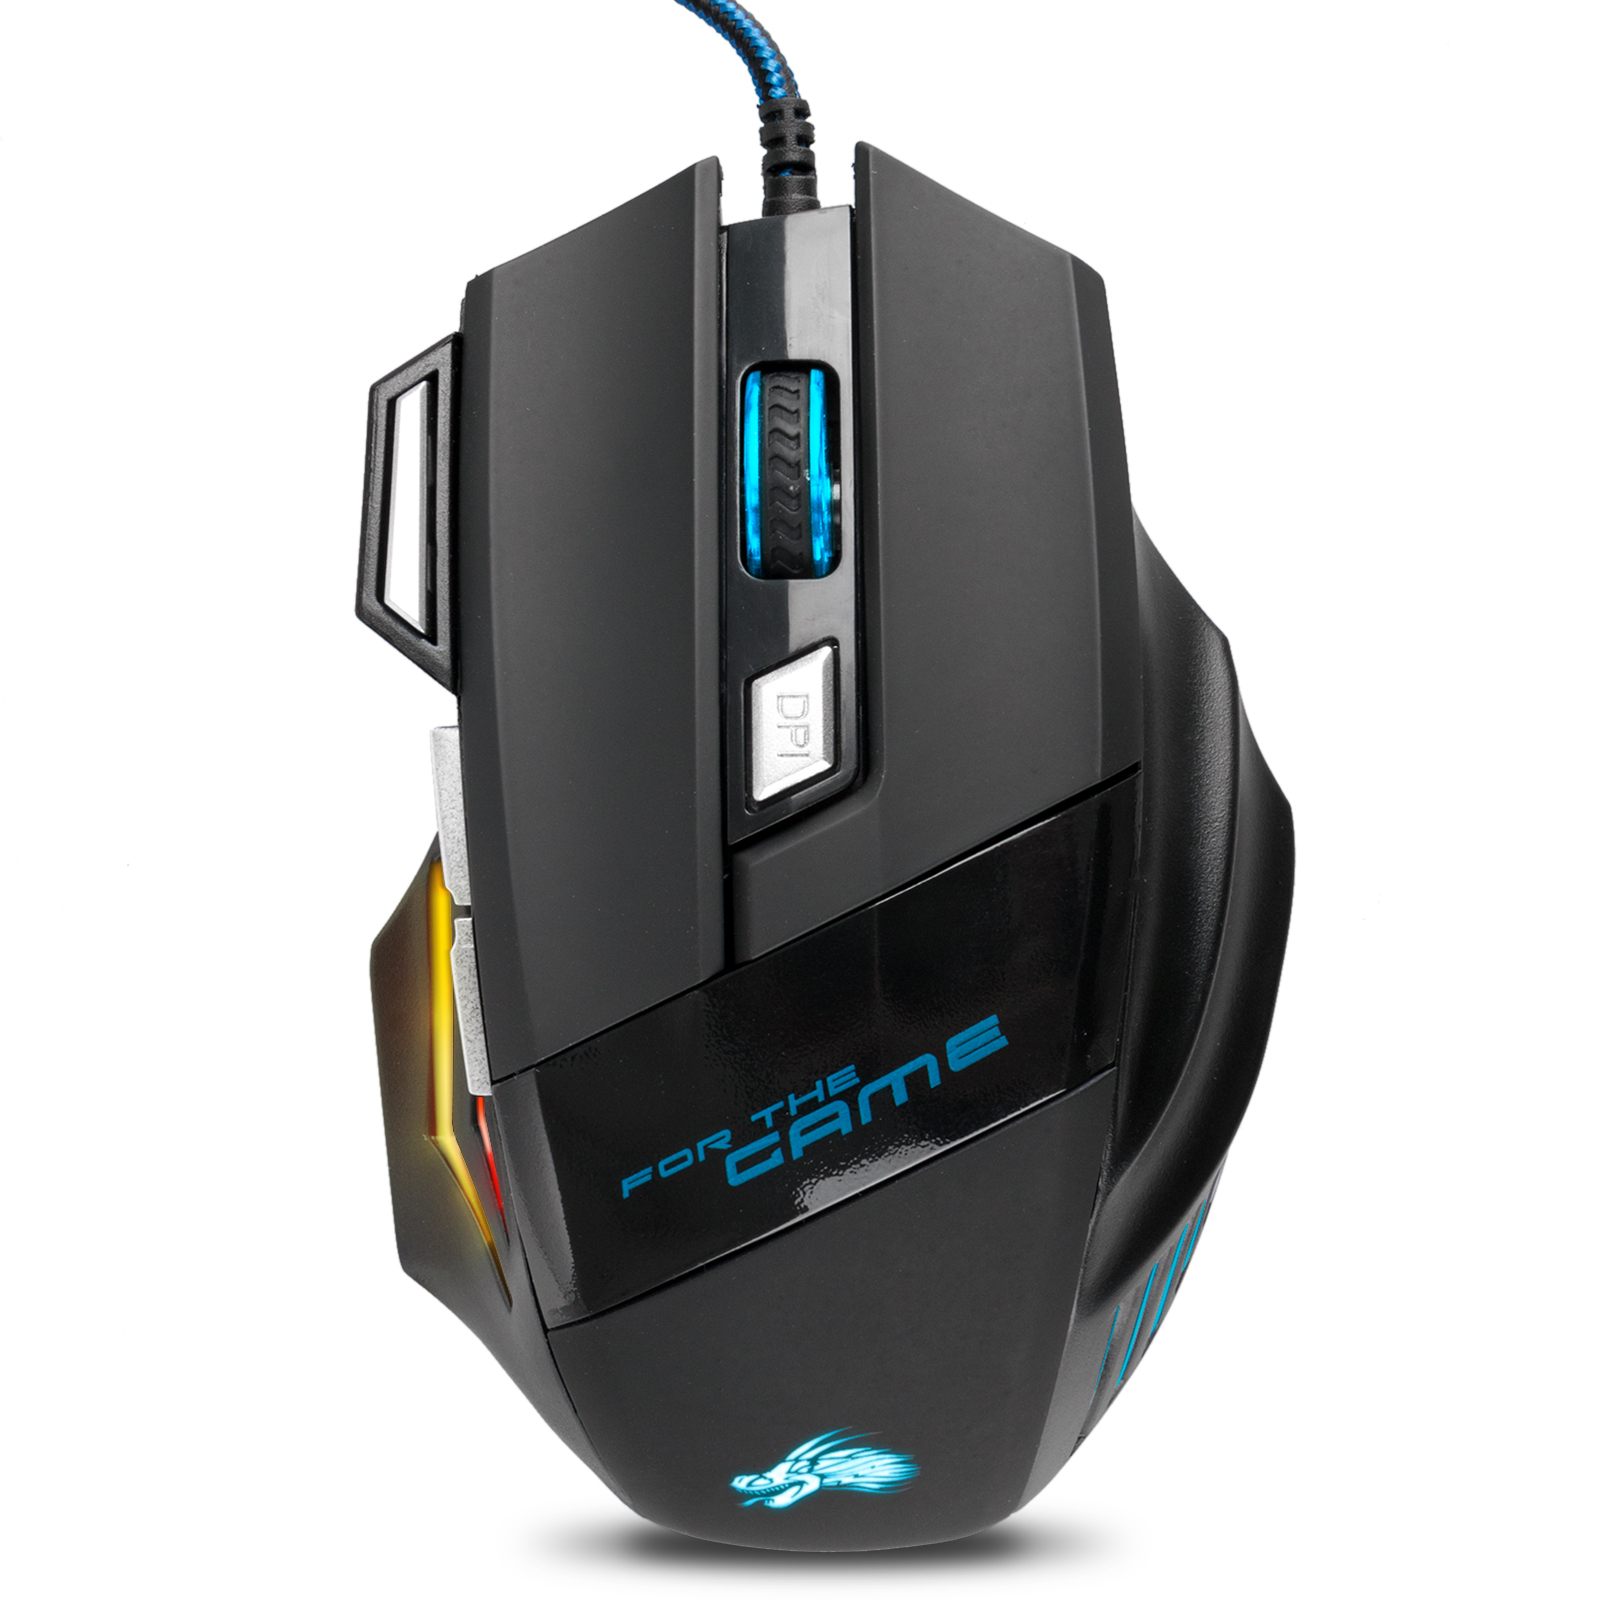 TSV Laser Gaming Mouse Wired with 7 Programable Buttons 5500 DPI 4 Color LED Light, Fire Button High Precision, Used for games and office (black)